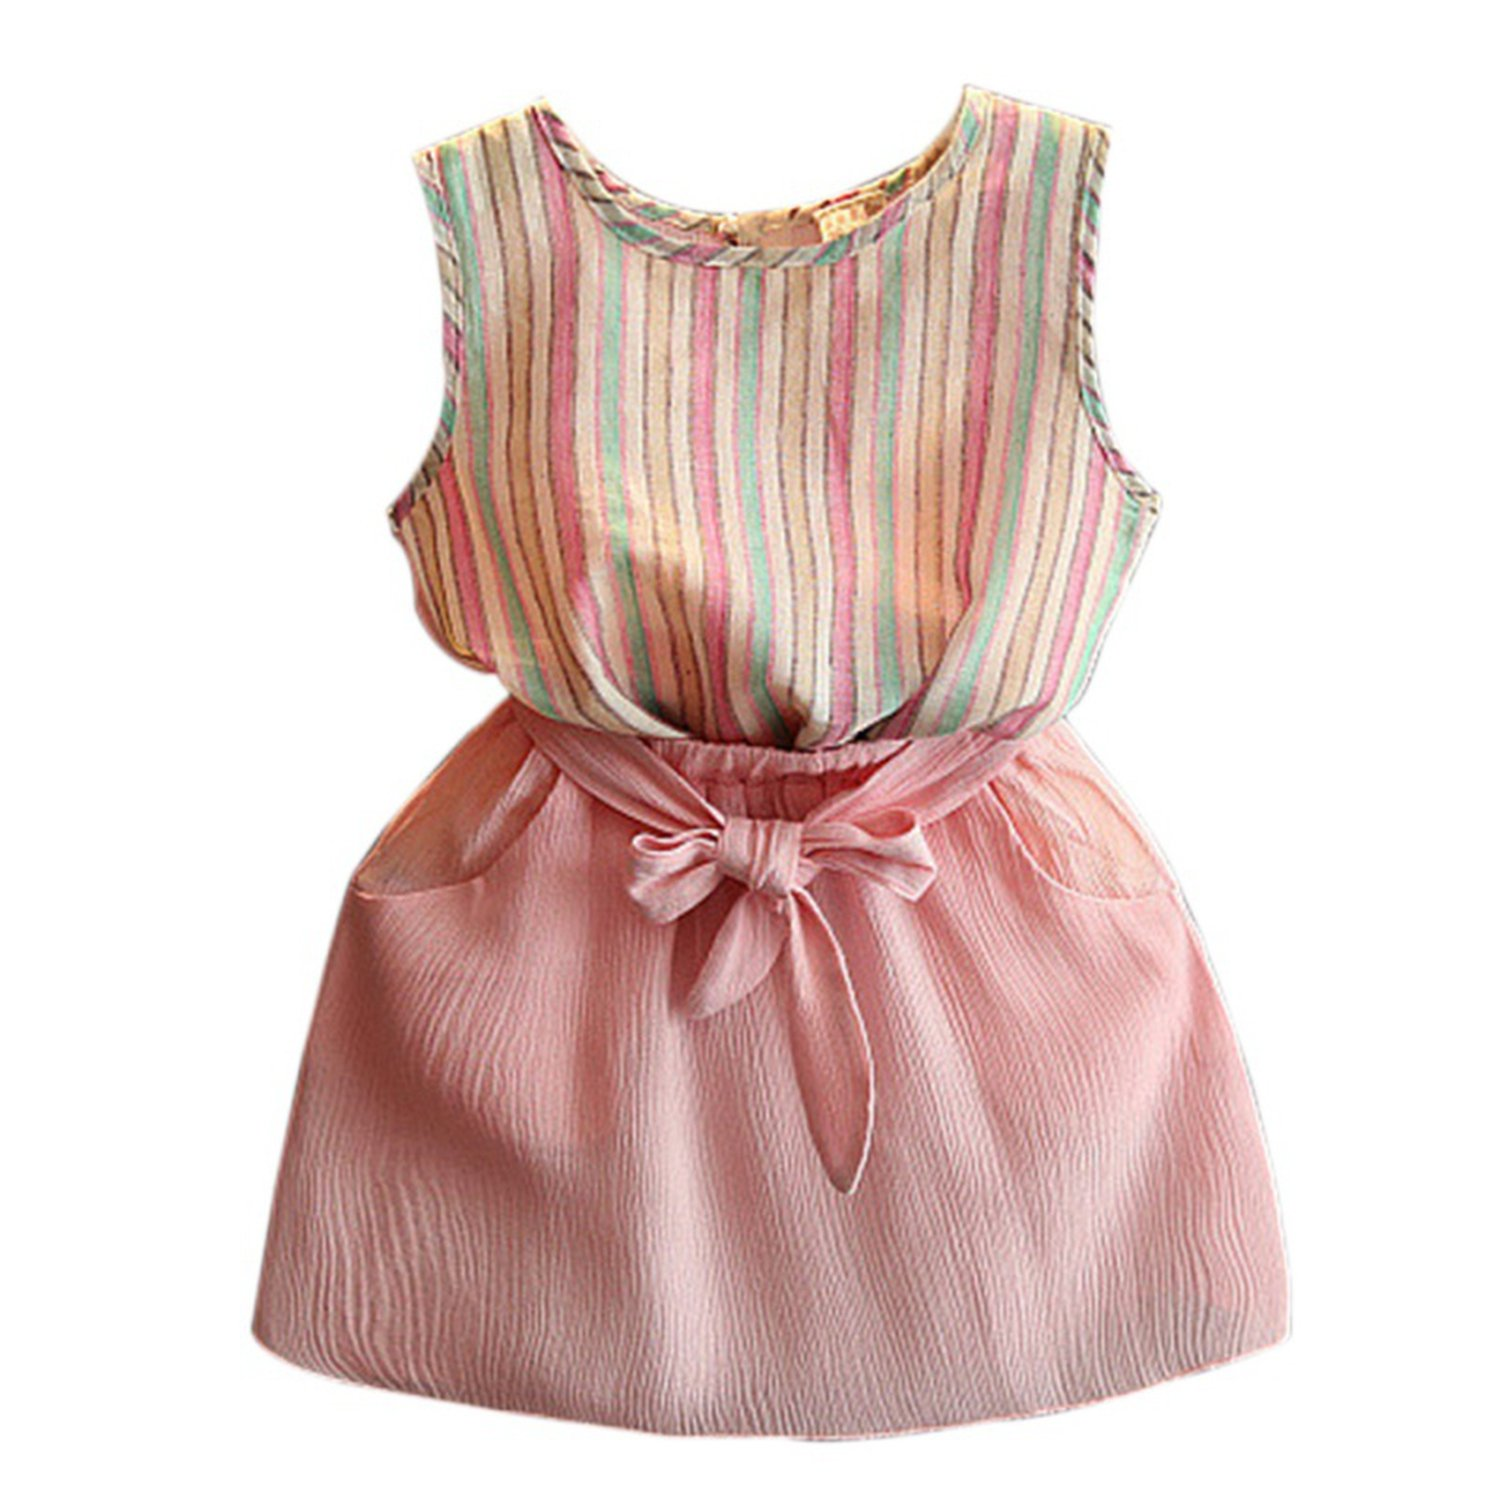 Zcaosma Toddler Kids Girls Clothes Sets Baby Clothes Striped T Shirt + Skirt,Pink,Zt